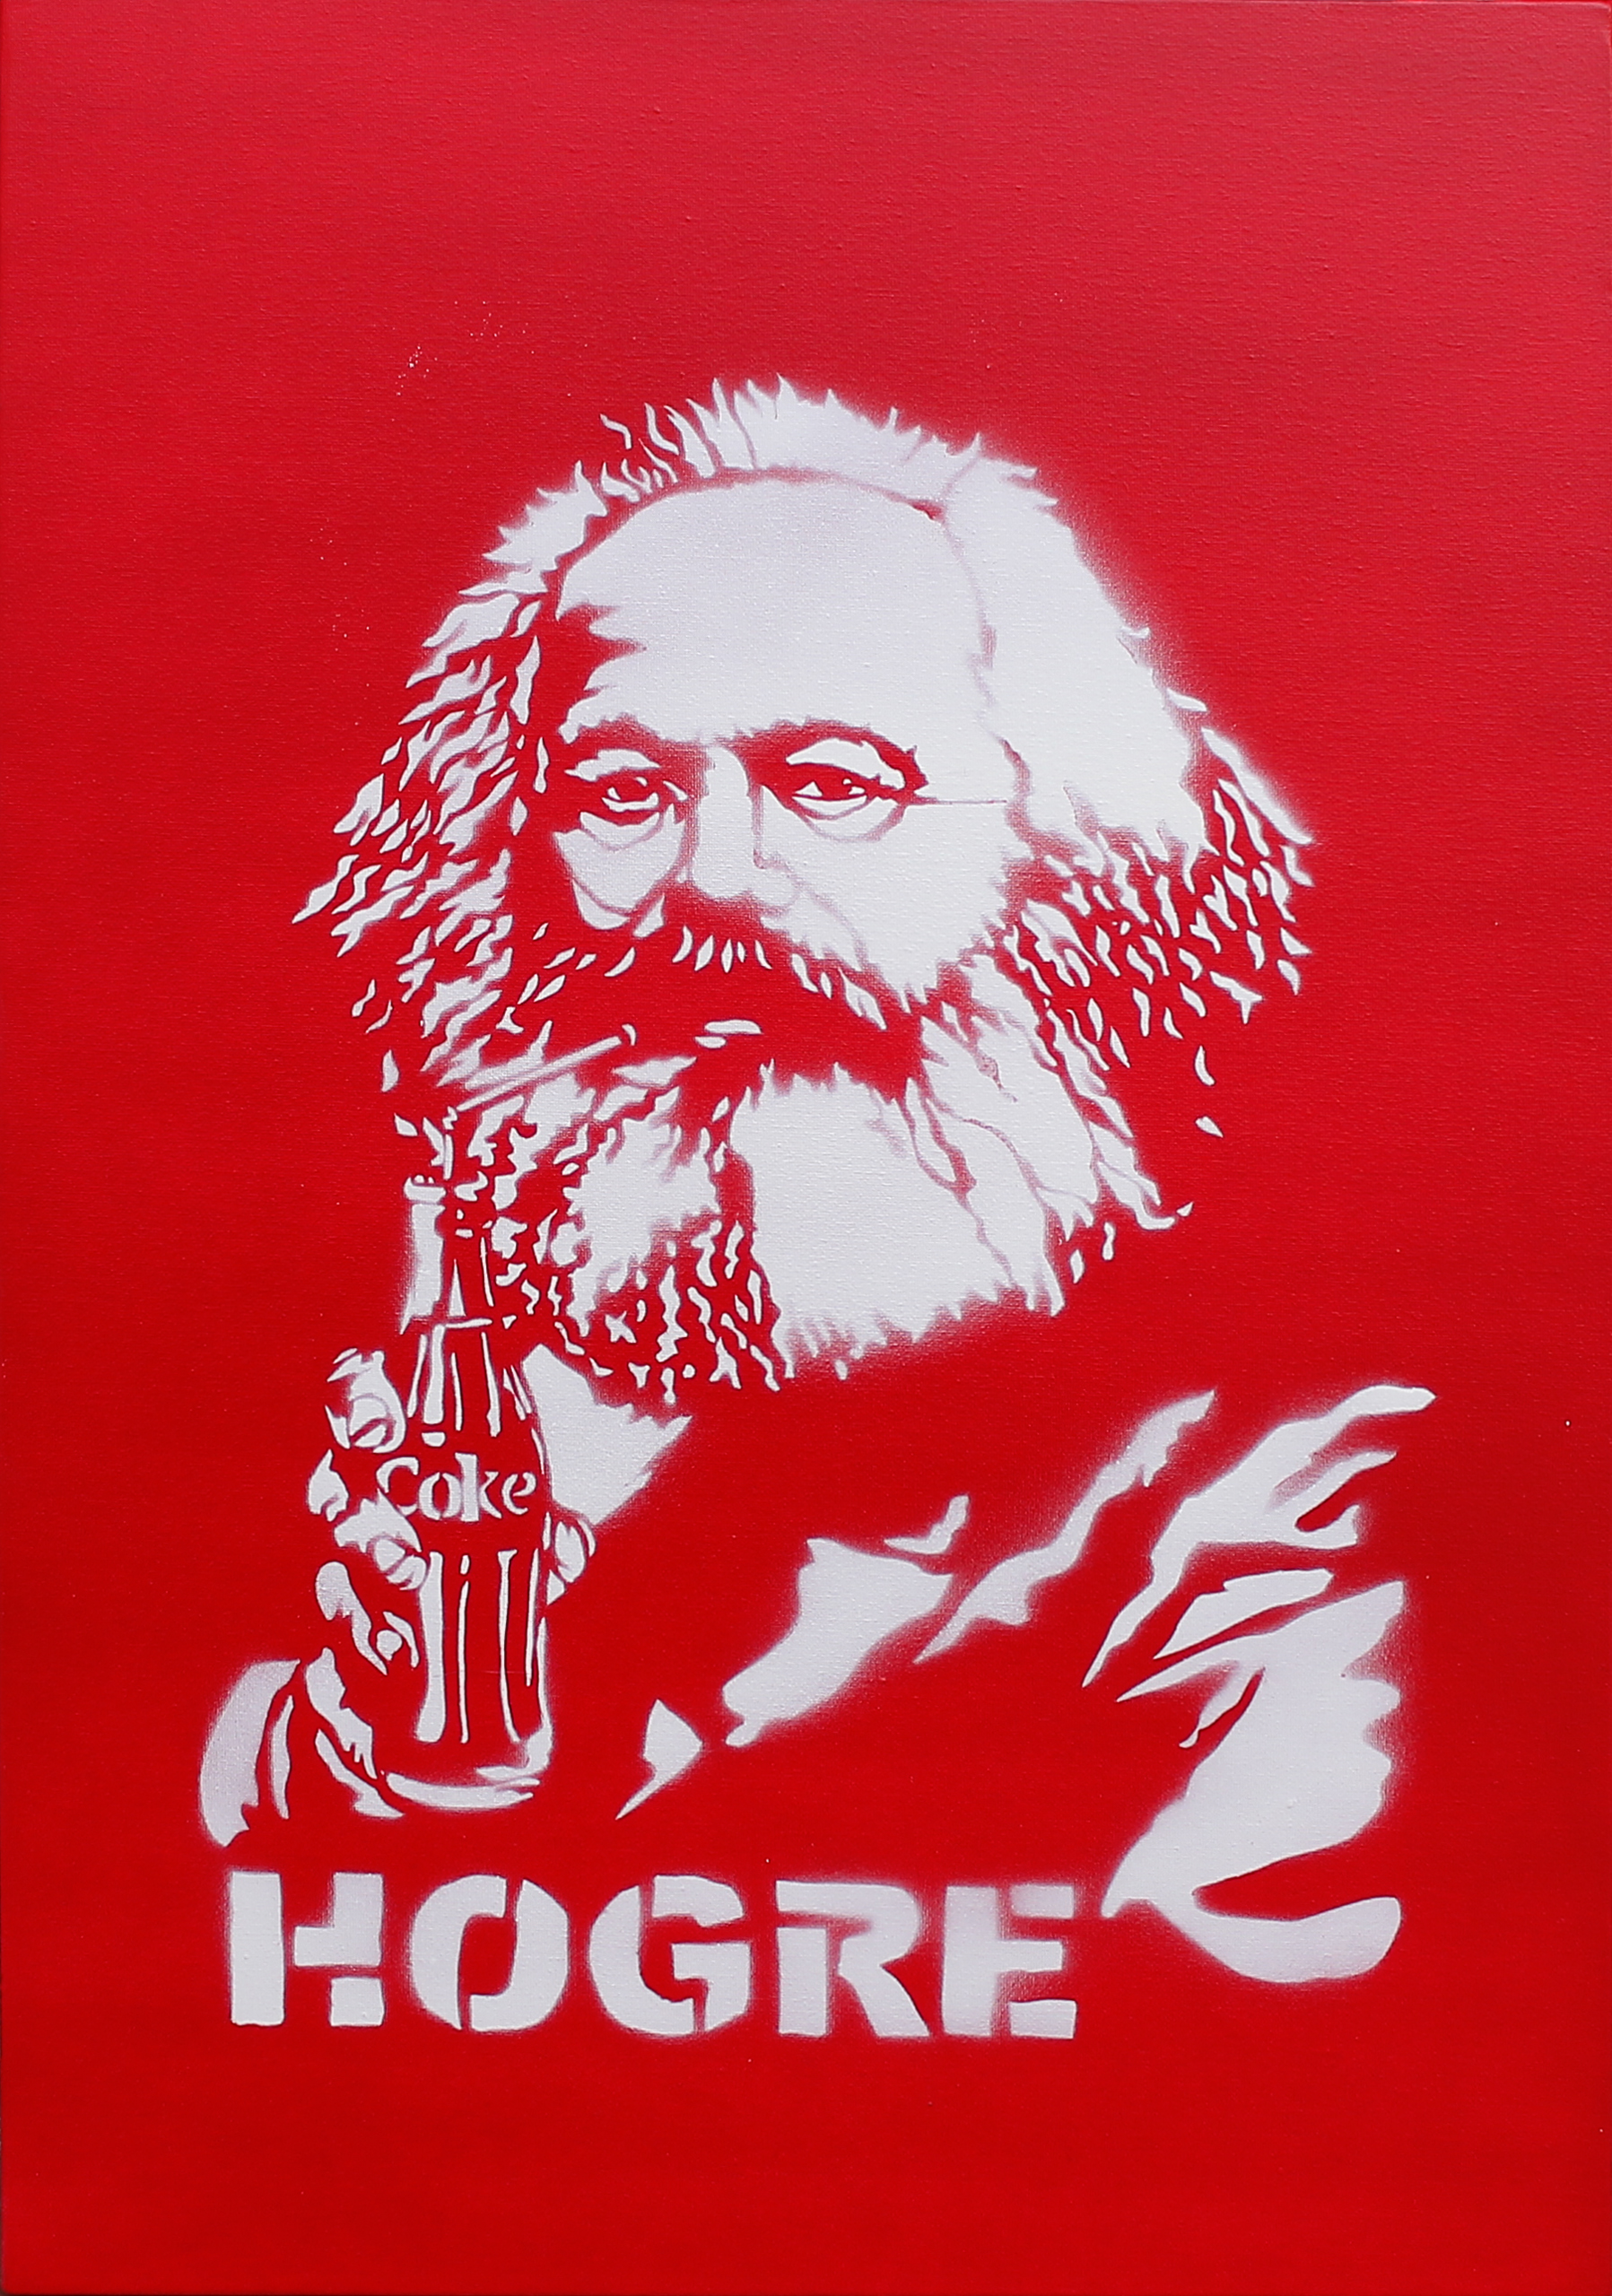 Hogre,  Marx is drinking a coke